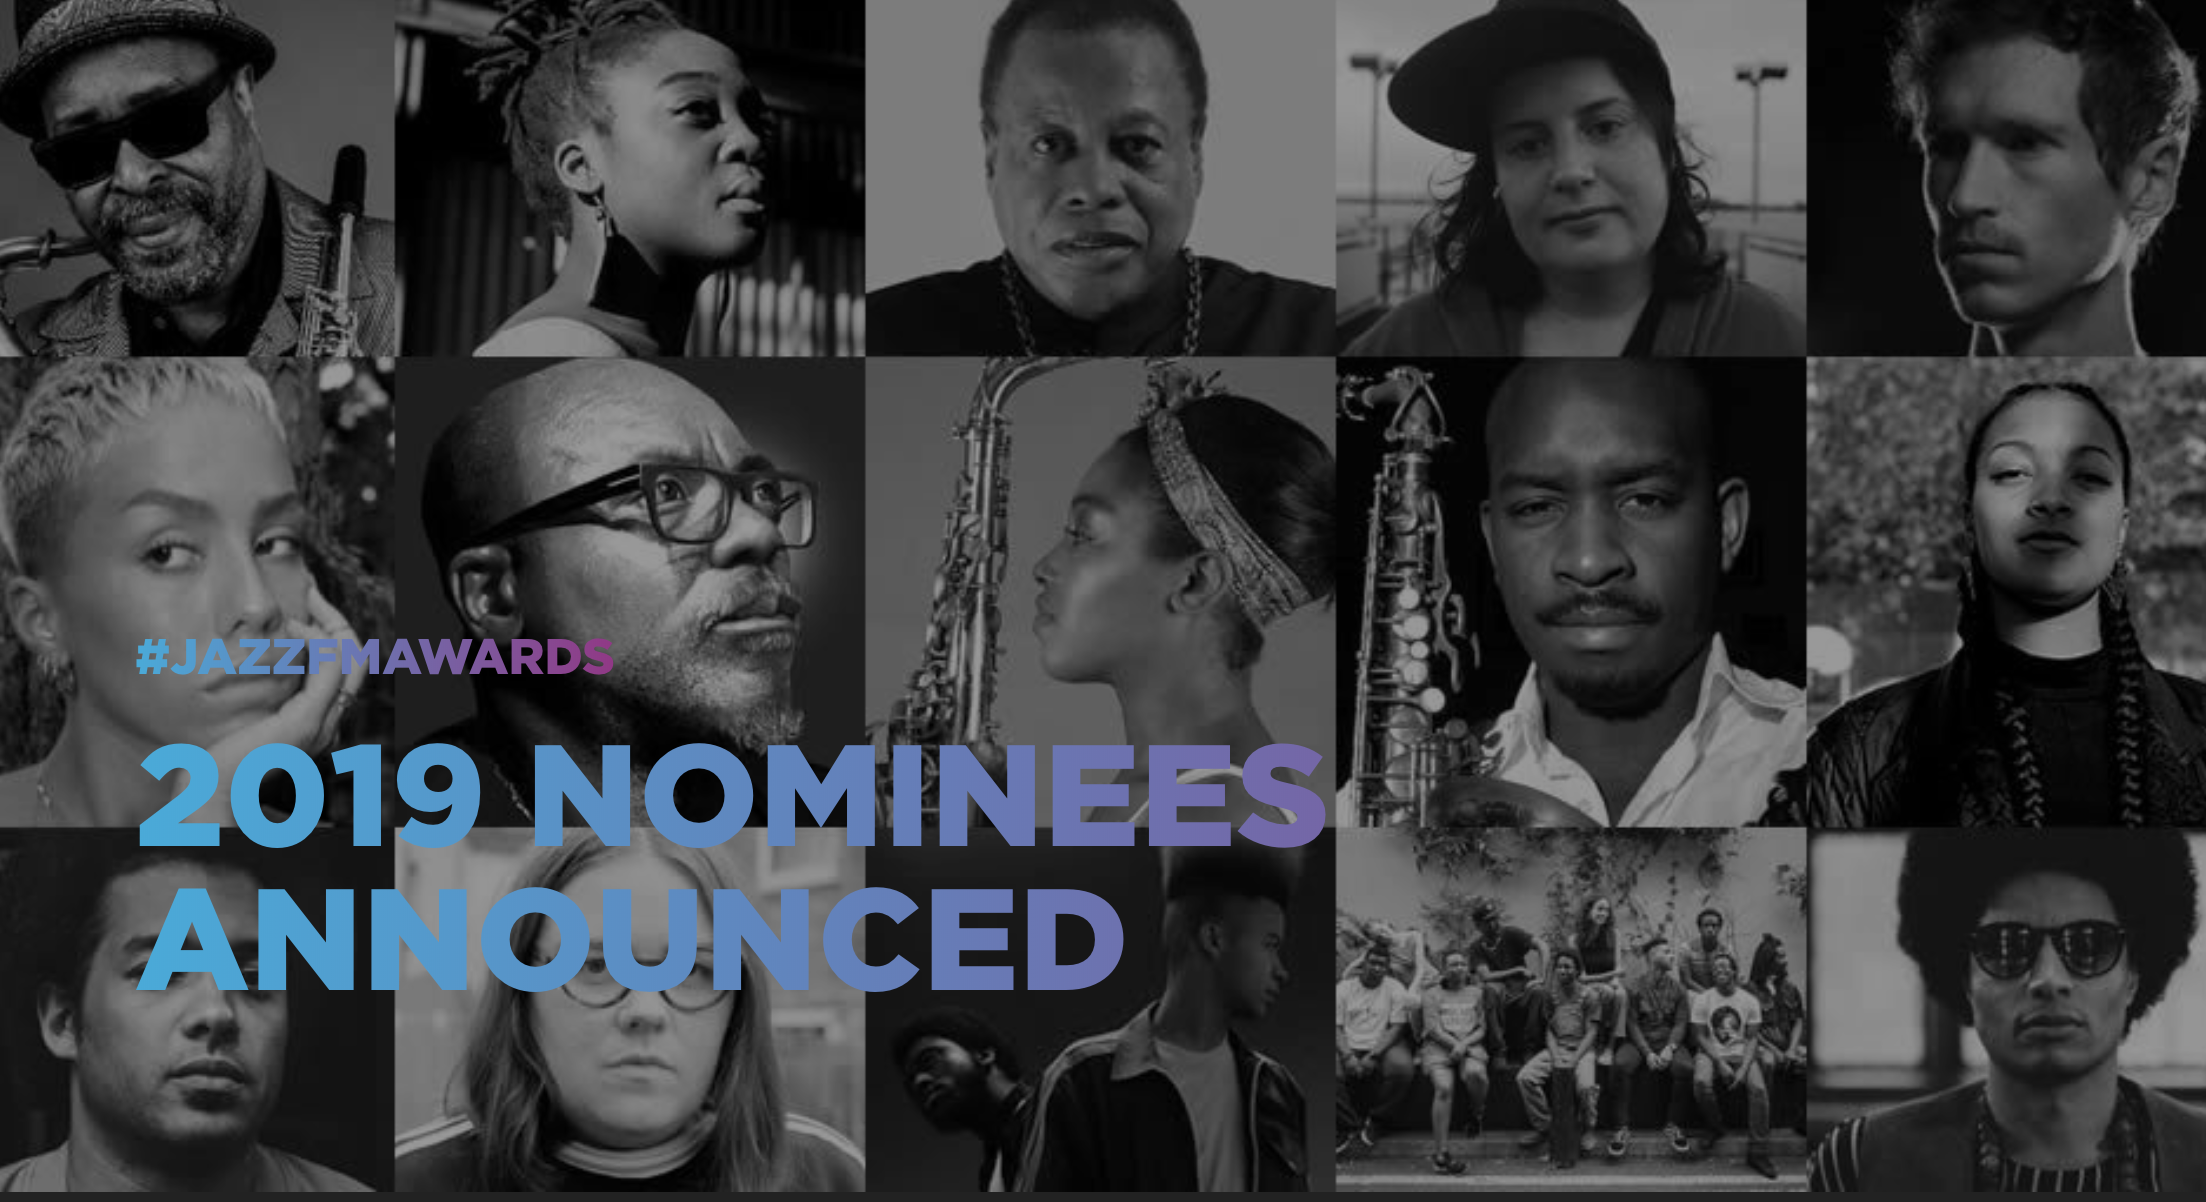 For the full list of nominations, please click on the image, above.